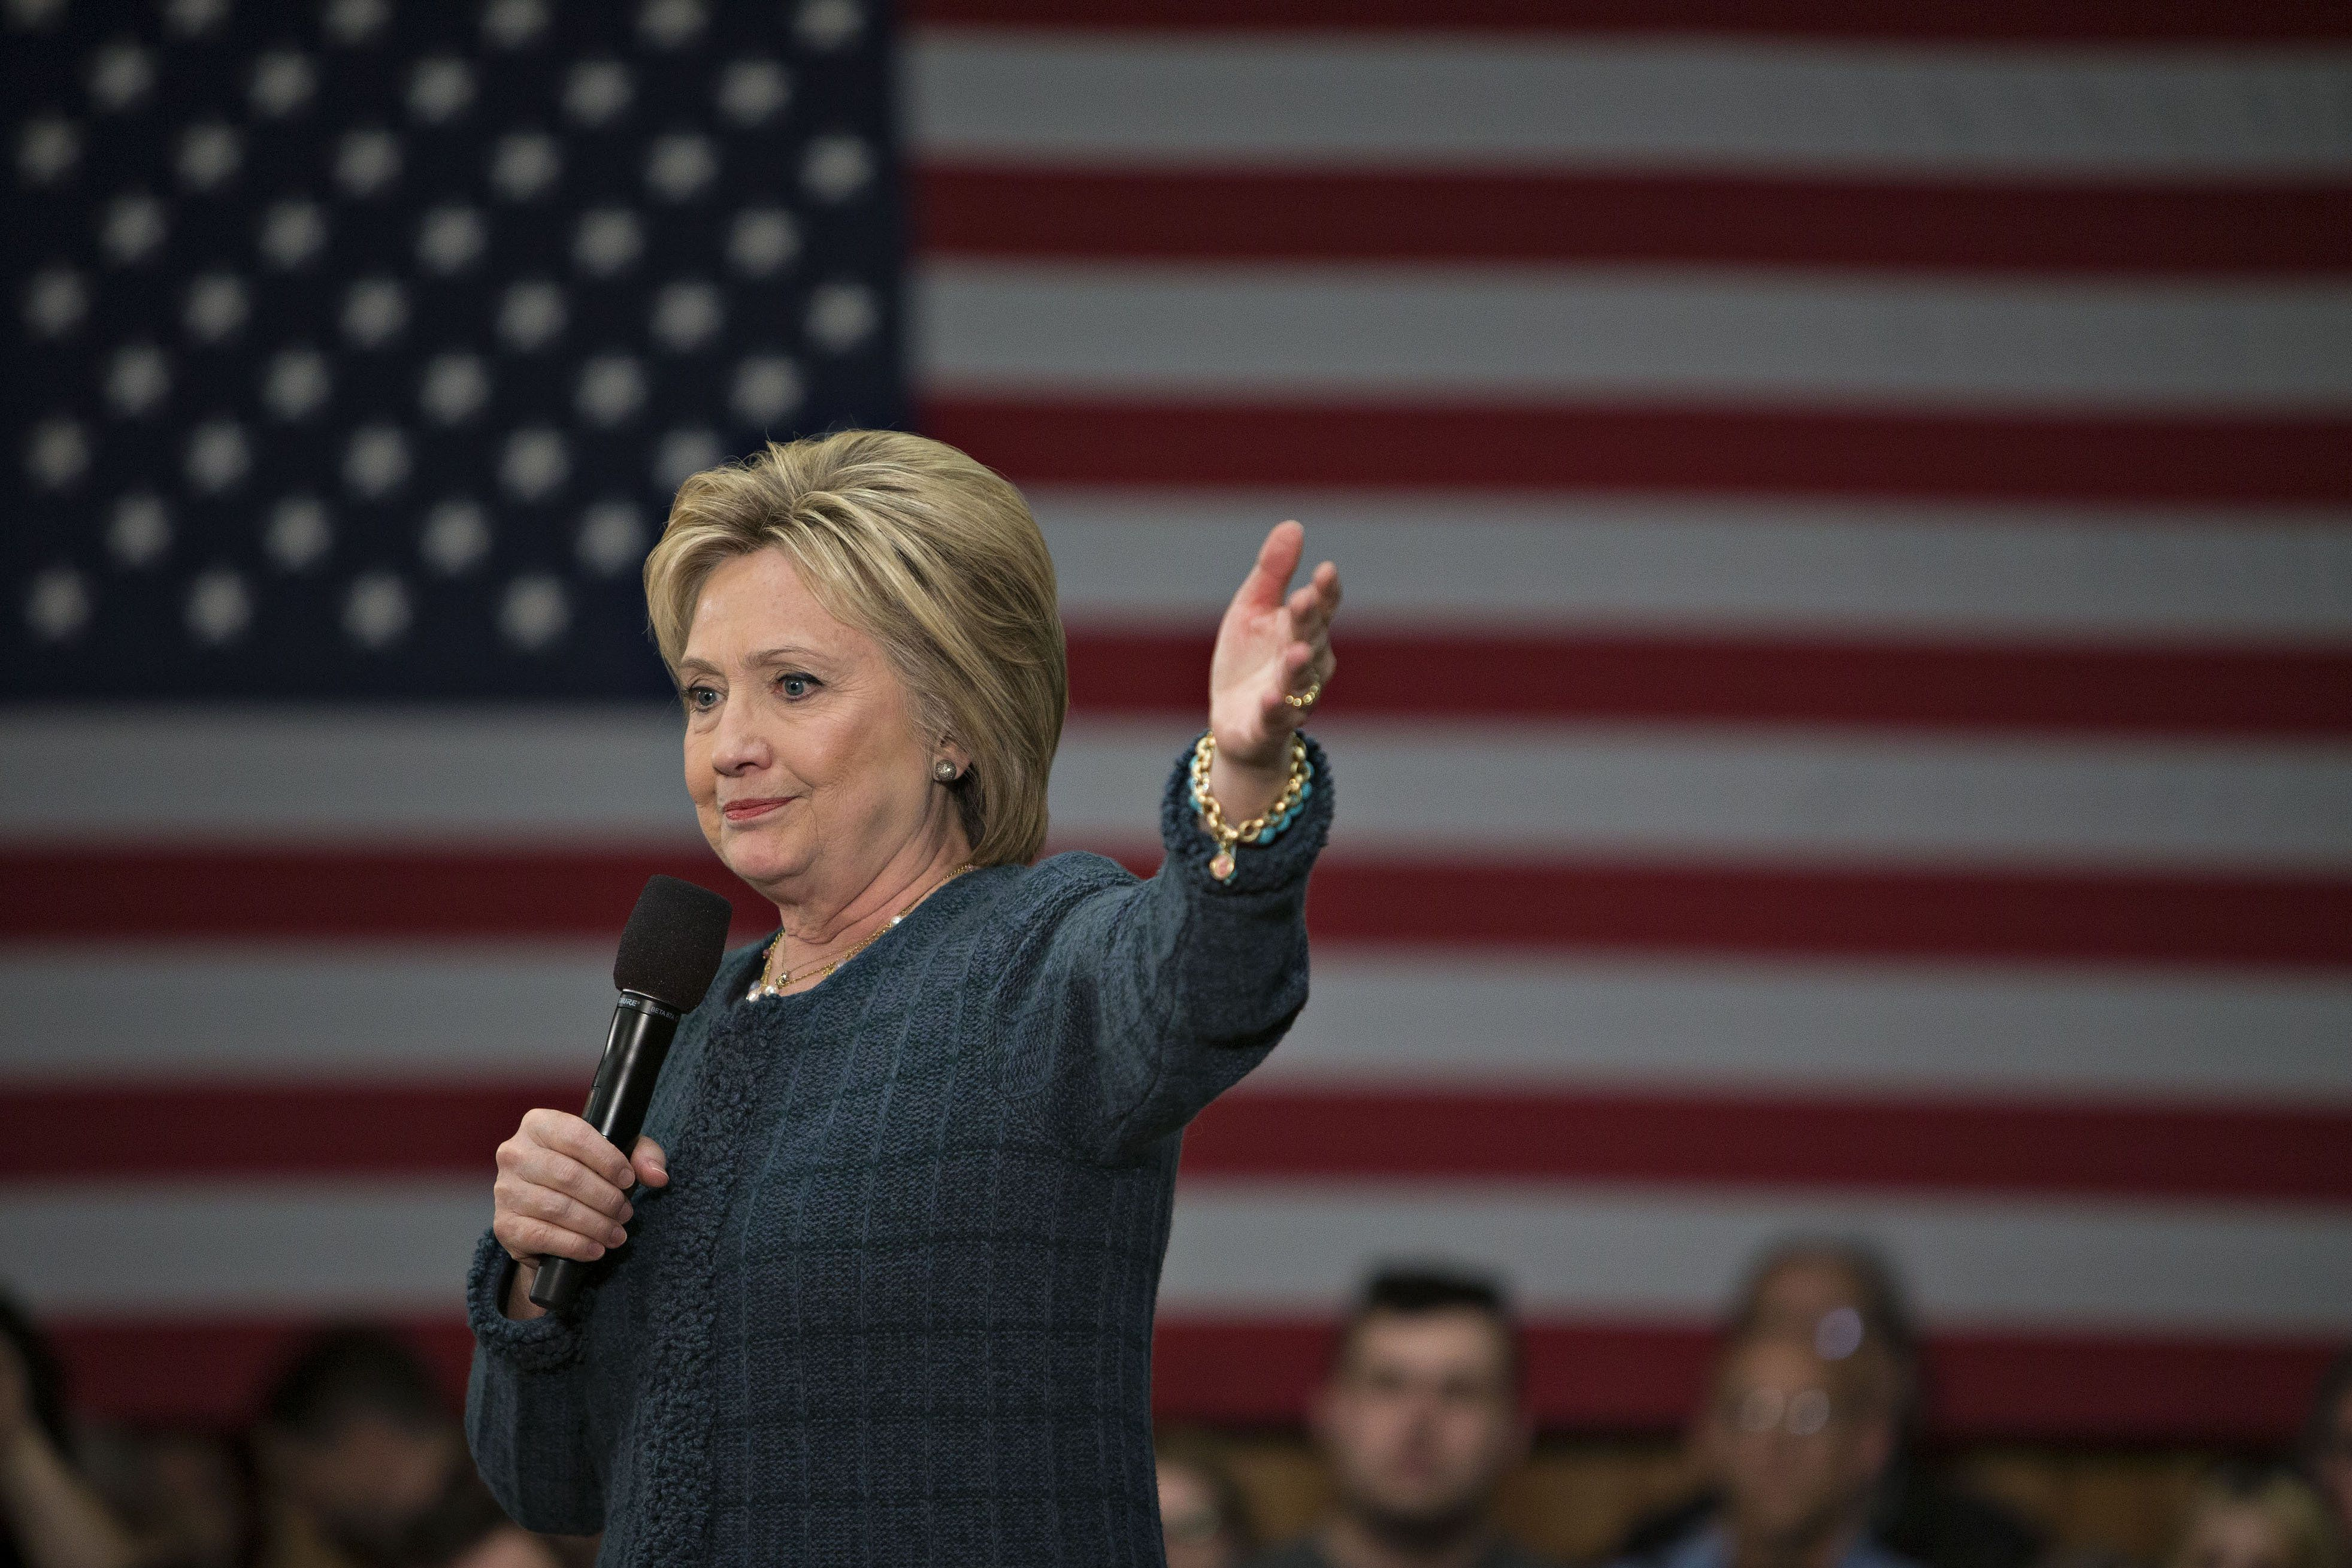 Clinton speaking at a campaign event in New Hampshire on Saturday.